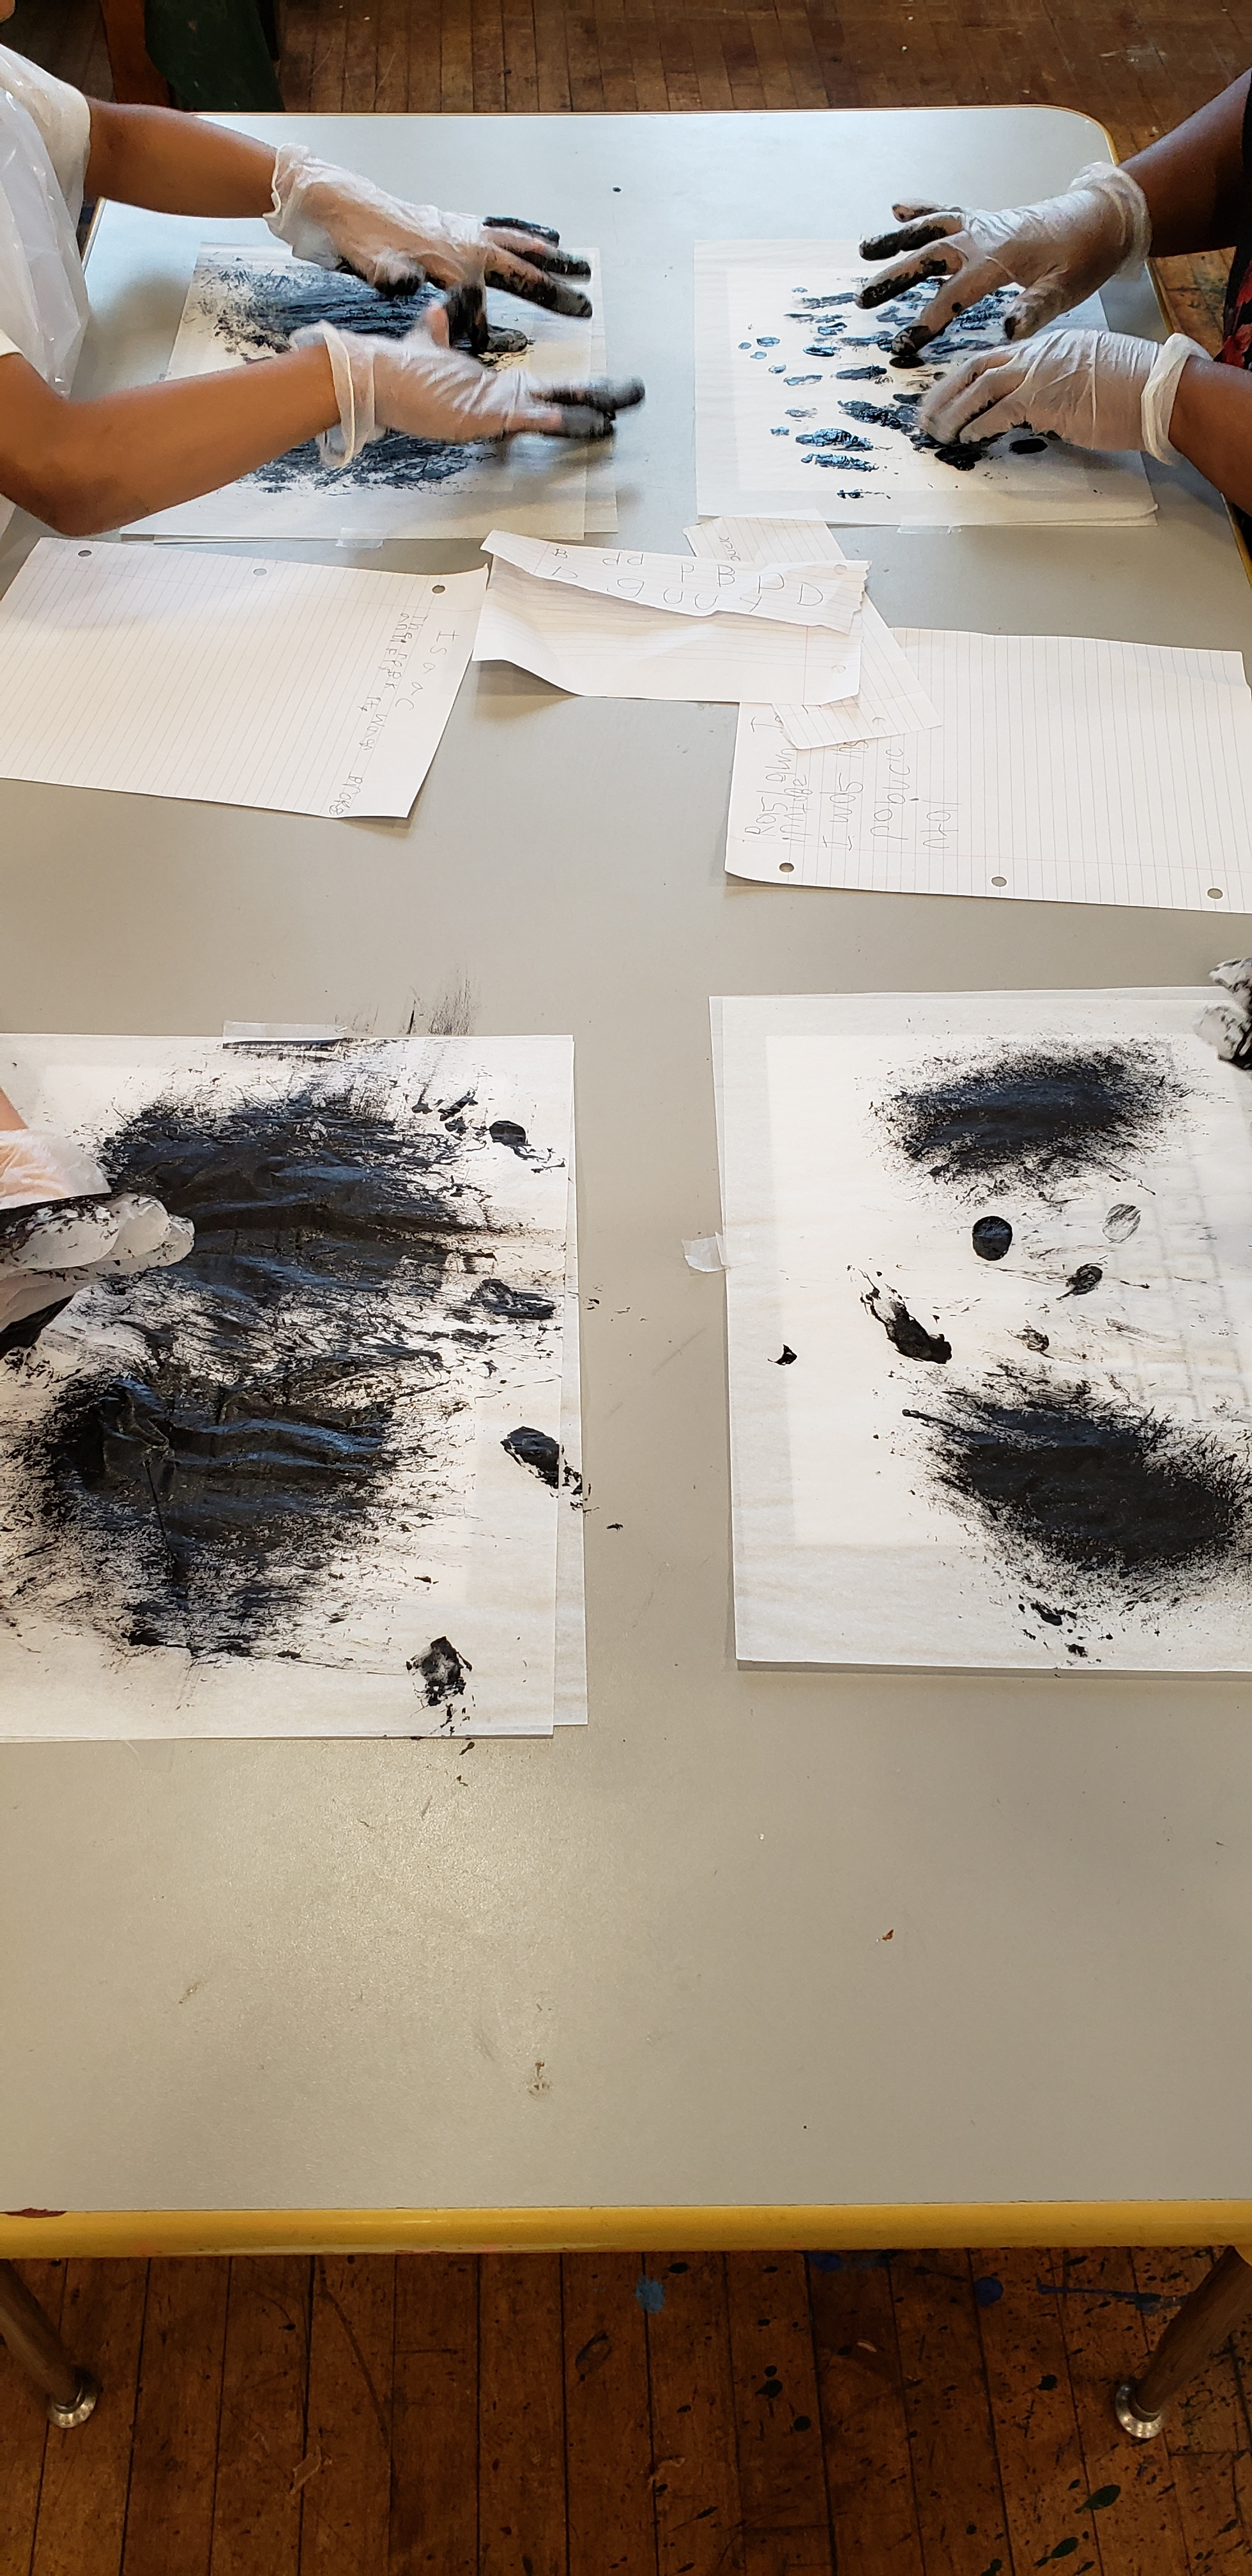 "On the art room tables students hands can be seen covered in gloves and black paint ""typing"" on the tracing paper."